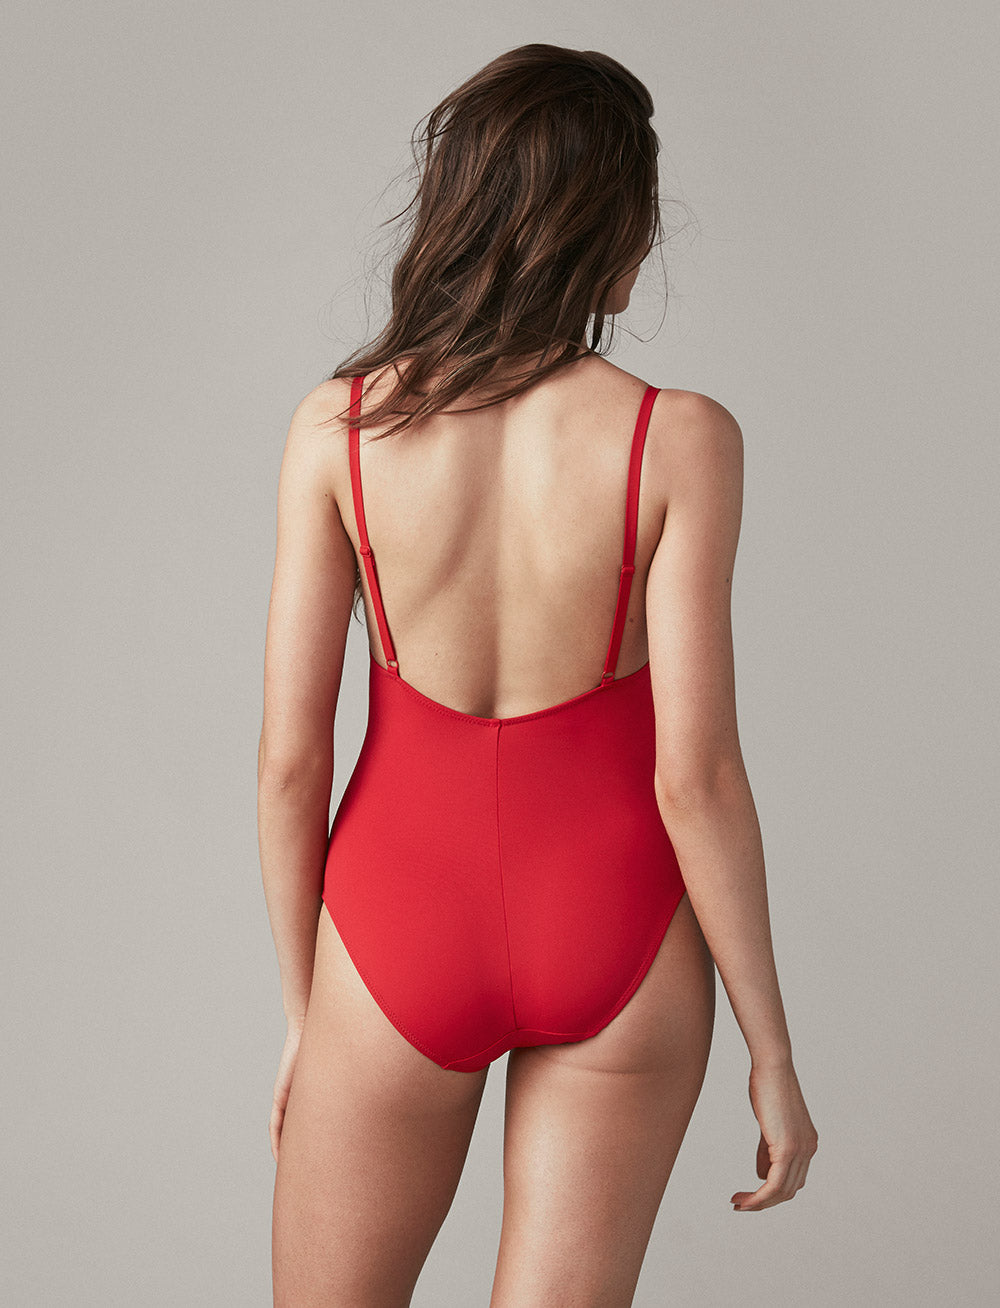 Swim Adjustable Maillot (Scarlet)